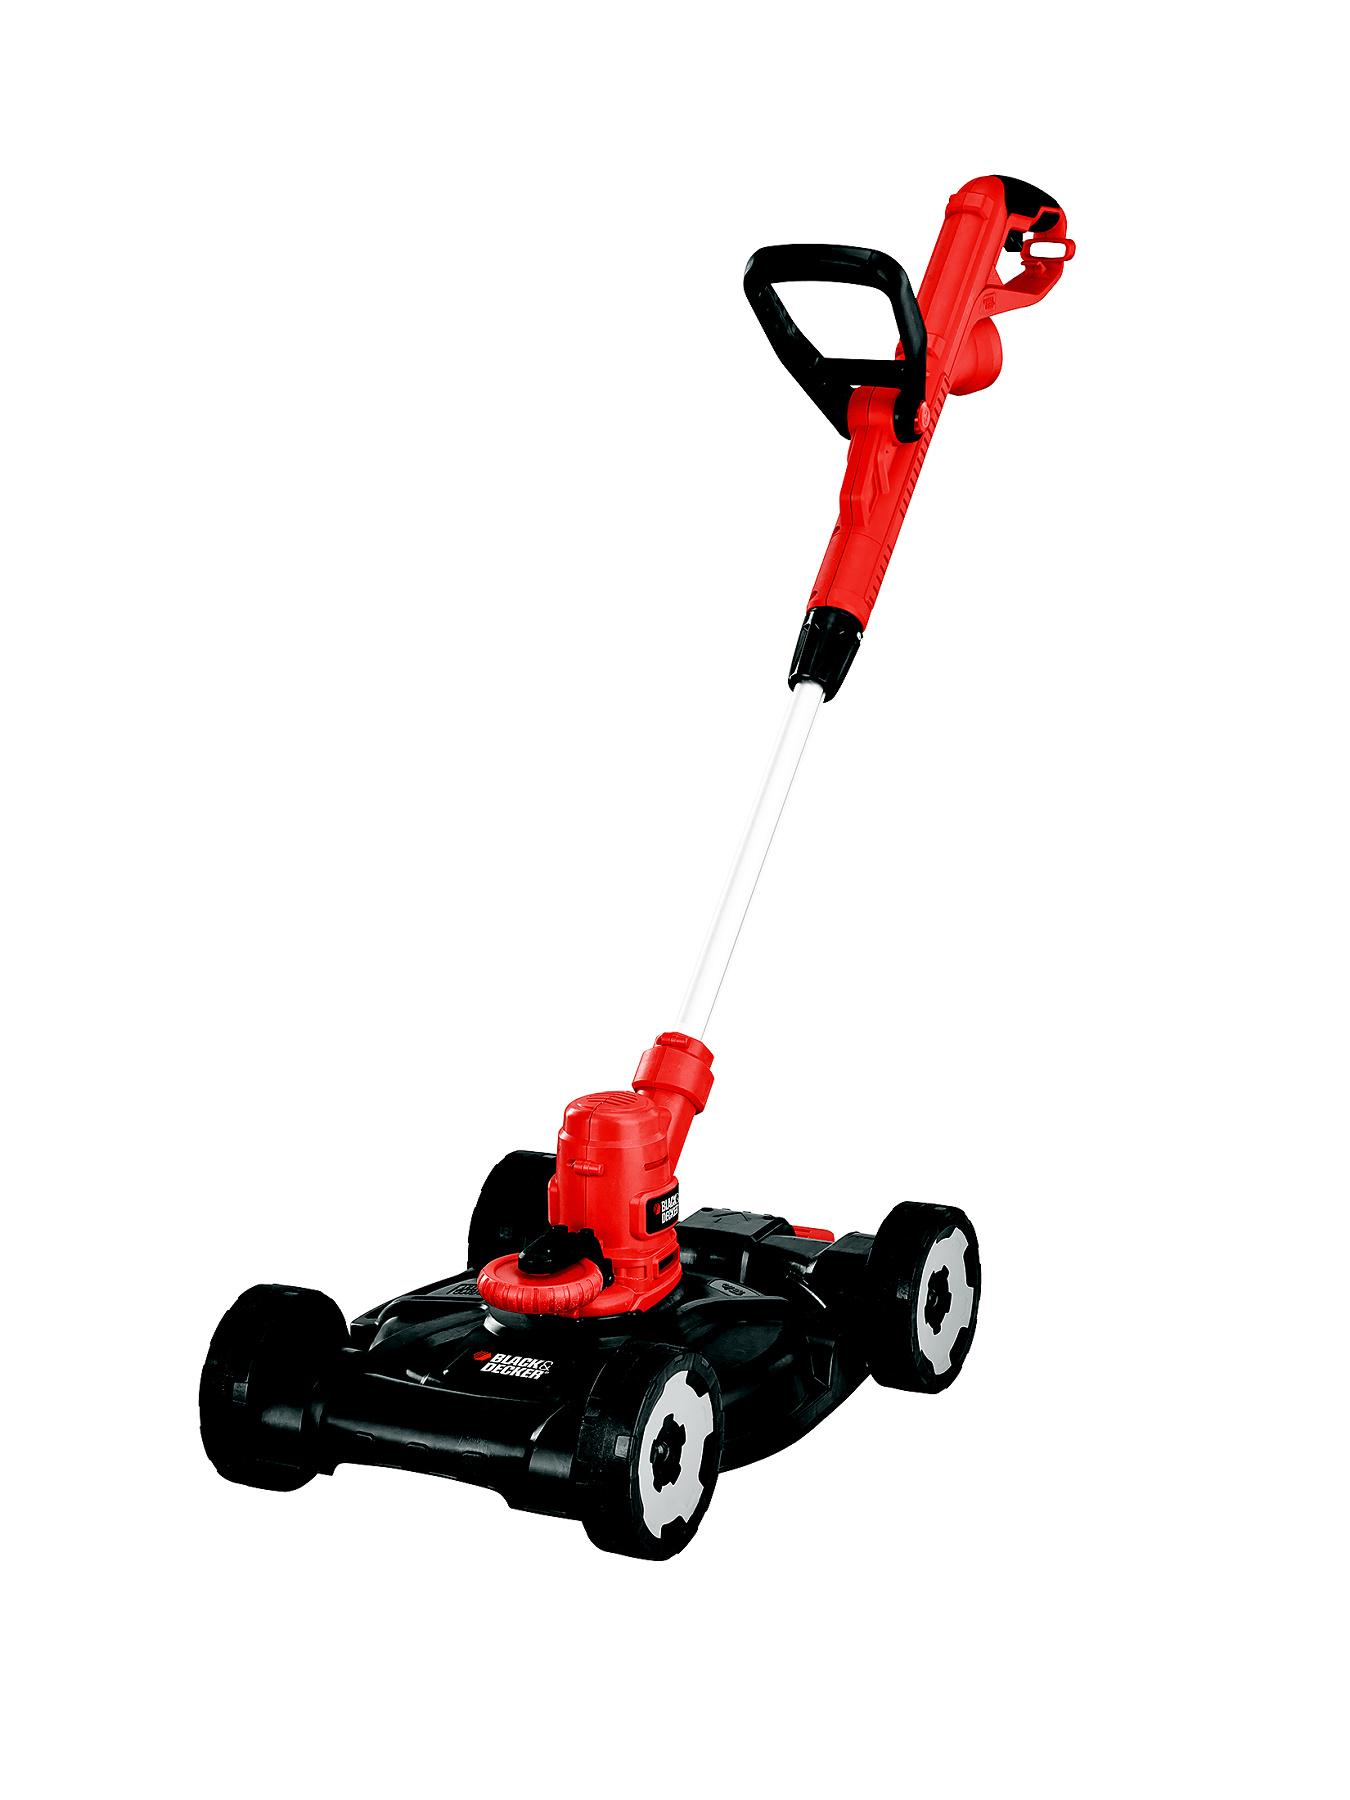 18-volt Lithium Ion Strimmer with Mower Deck